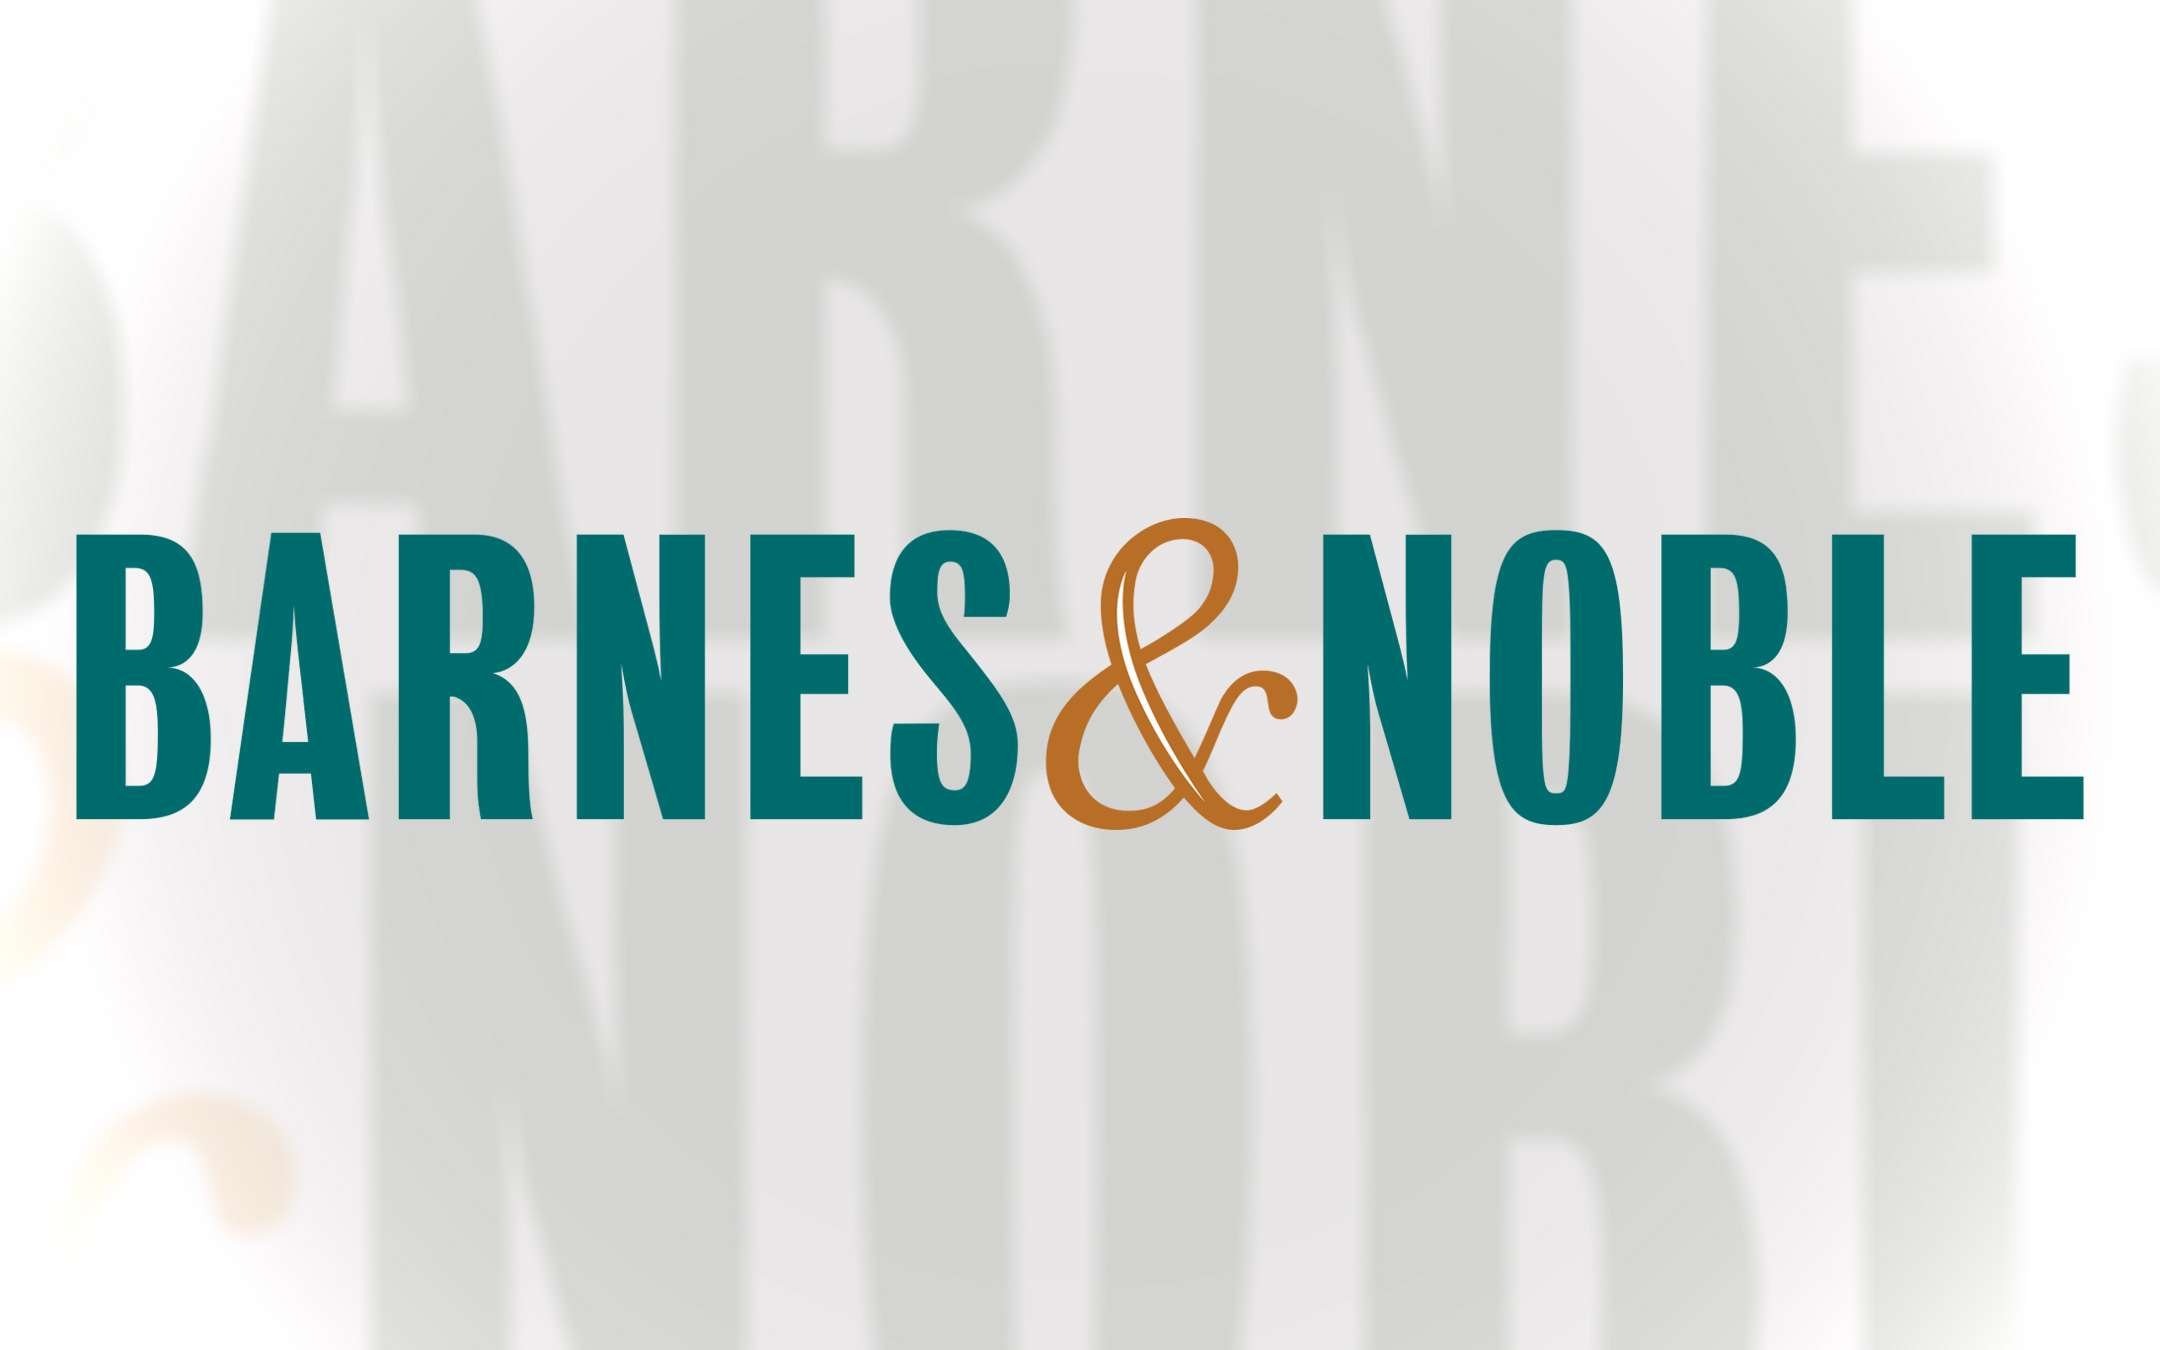 Attack on Barnes & Noble: Personal data exposed